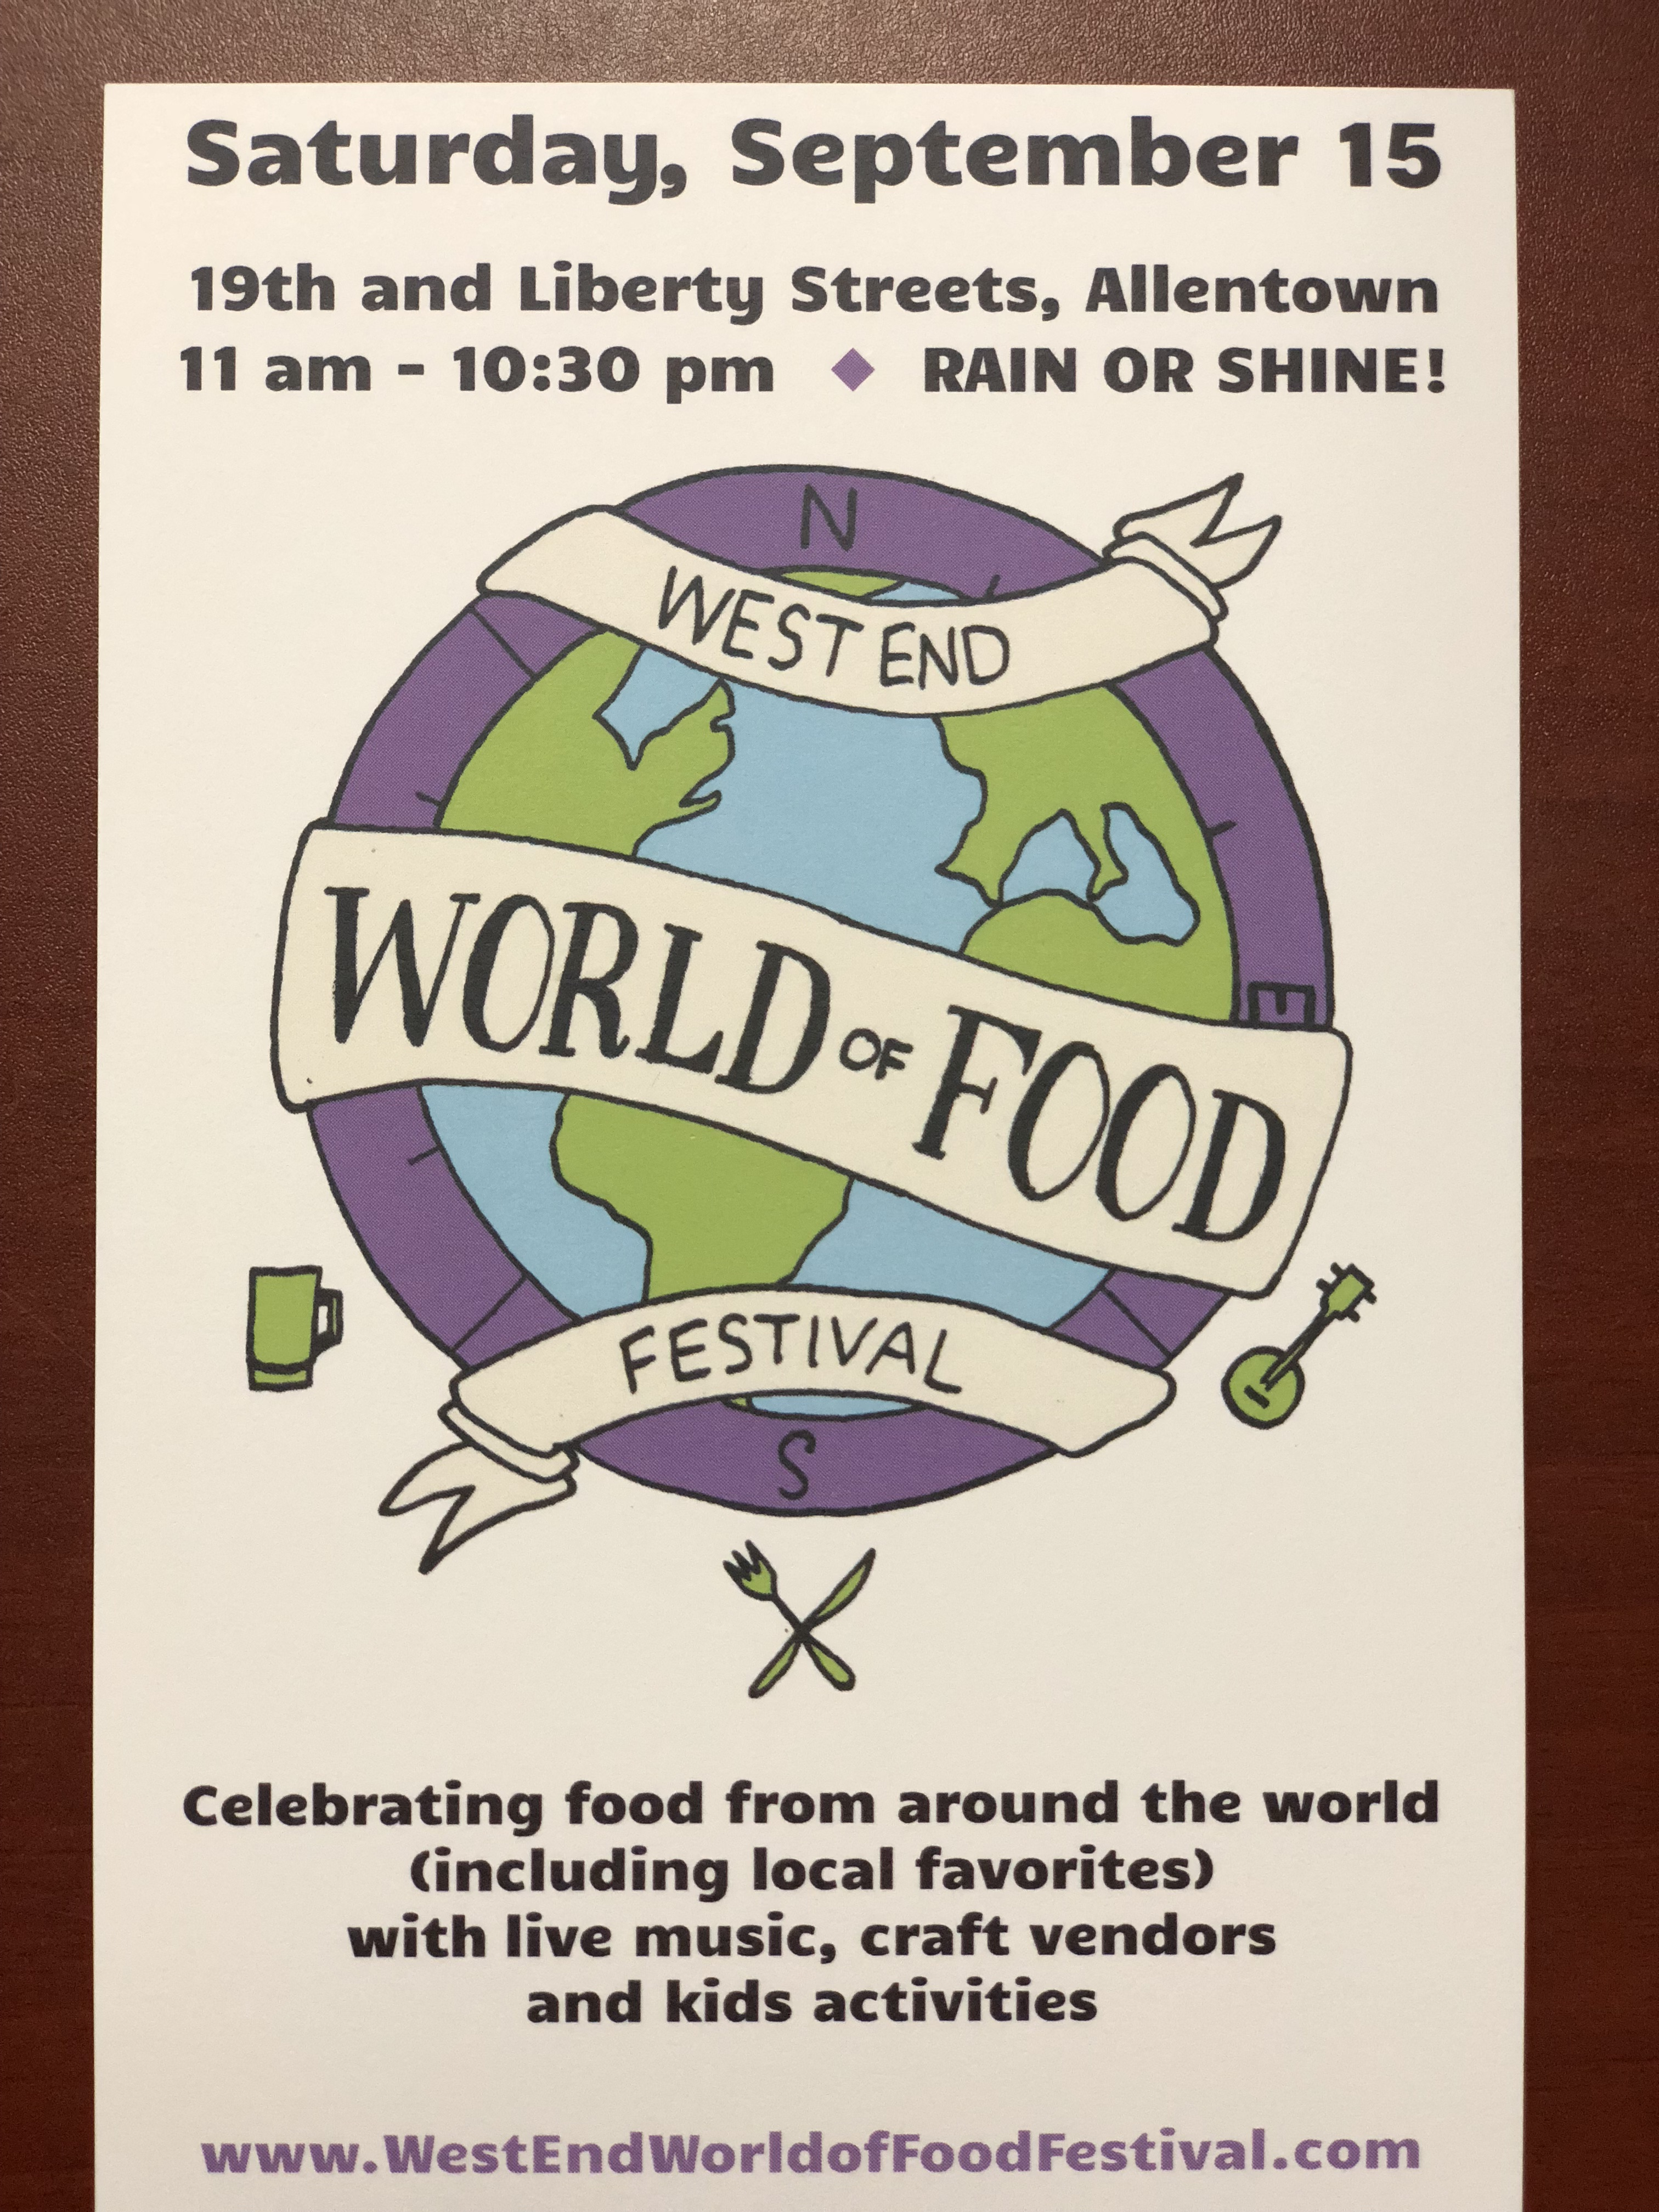 West End World of Food Festival